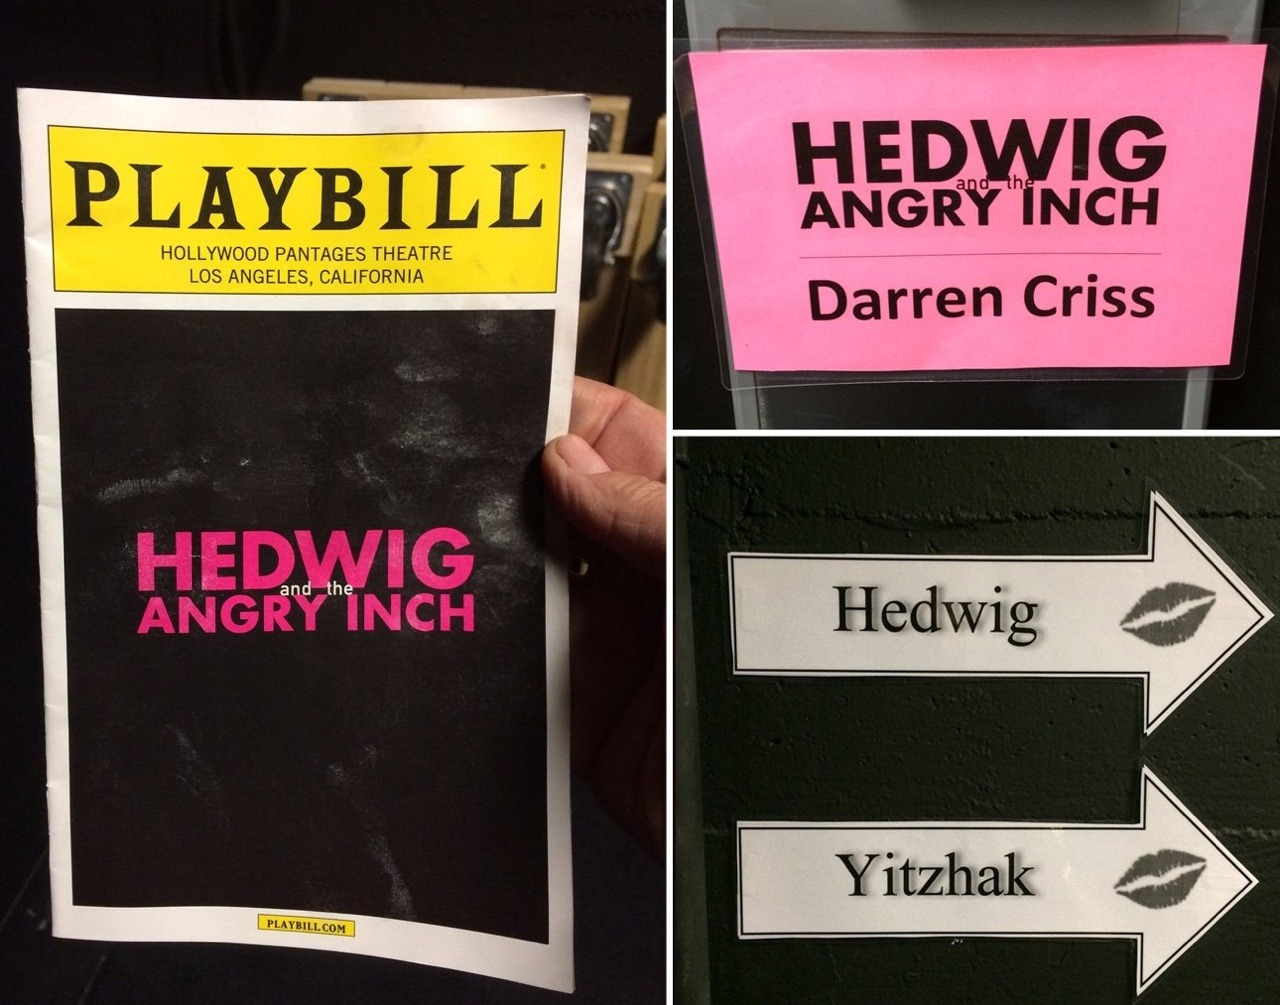 thegoldengatetheater - Fan Reviews, Media Reviews, and comments from members of the Media, about Darren in Hedwig and the Angry Inch--SF and L.A. Tour  - Page 4 Tumblr_og2u5szW1K1ubd9qxo3_1280